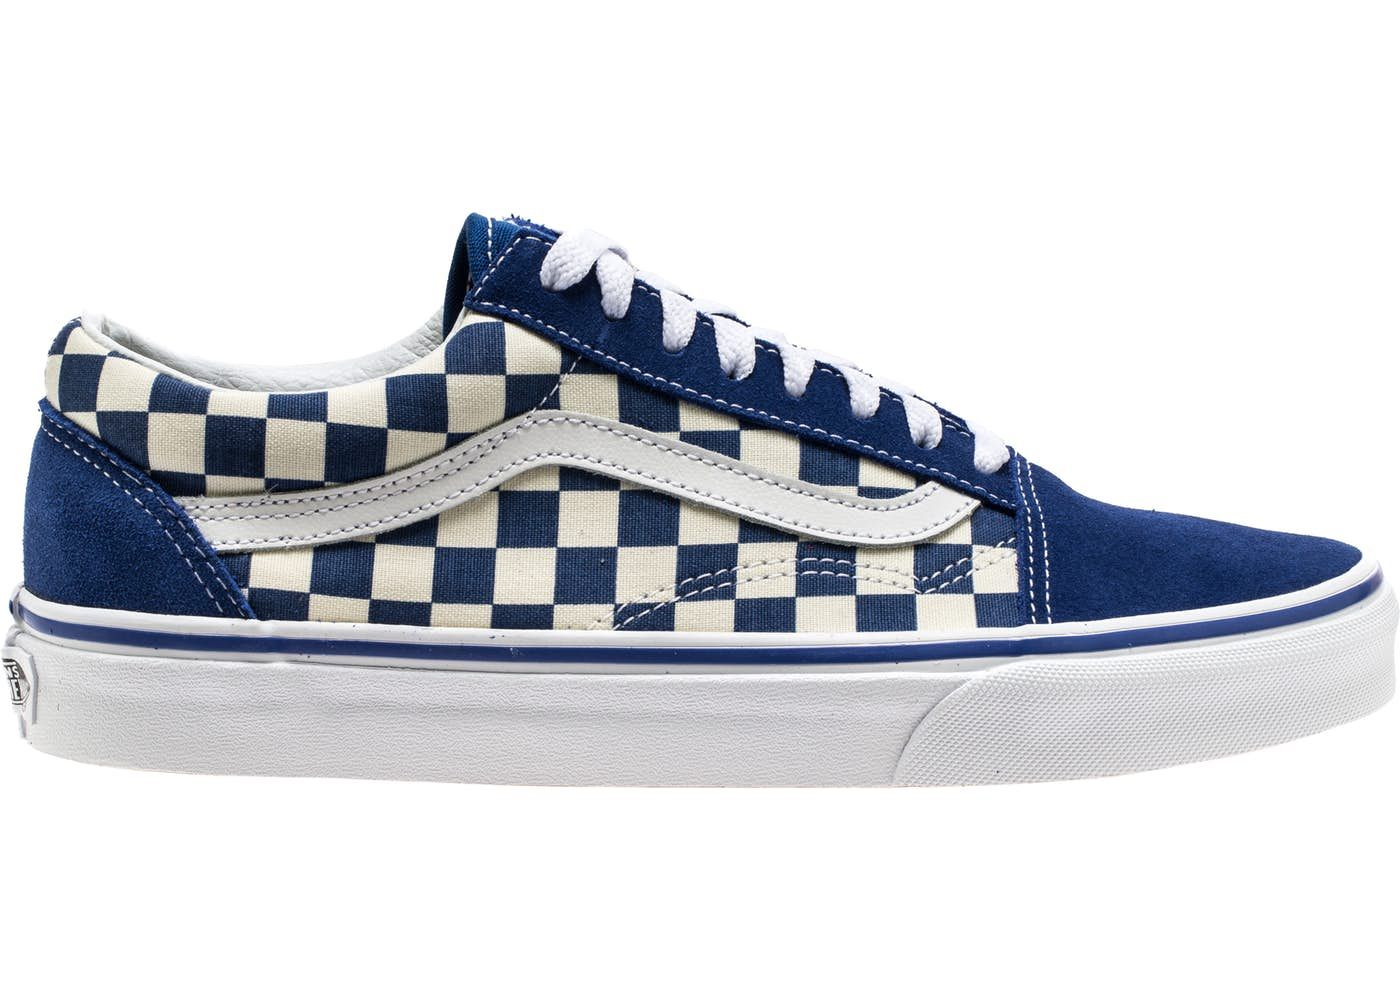 Check out the Vans Old Skool Blue Checkerboard available on